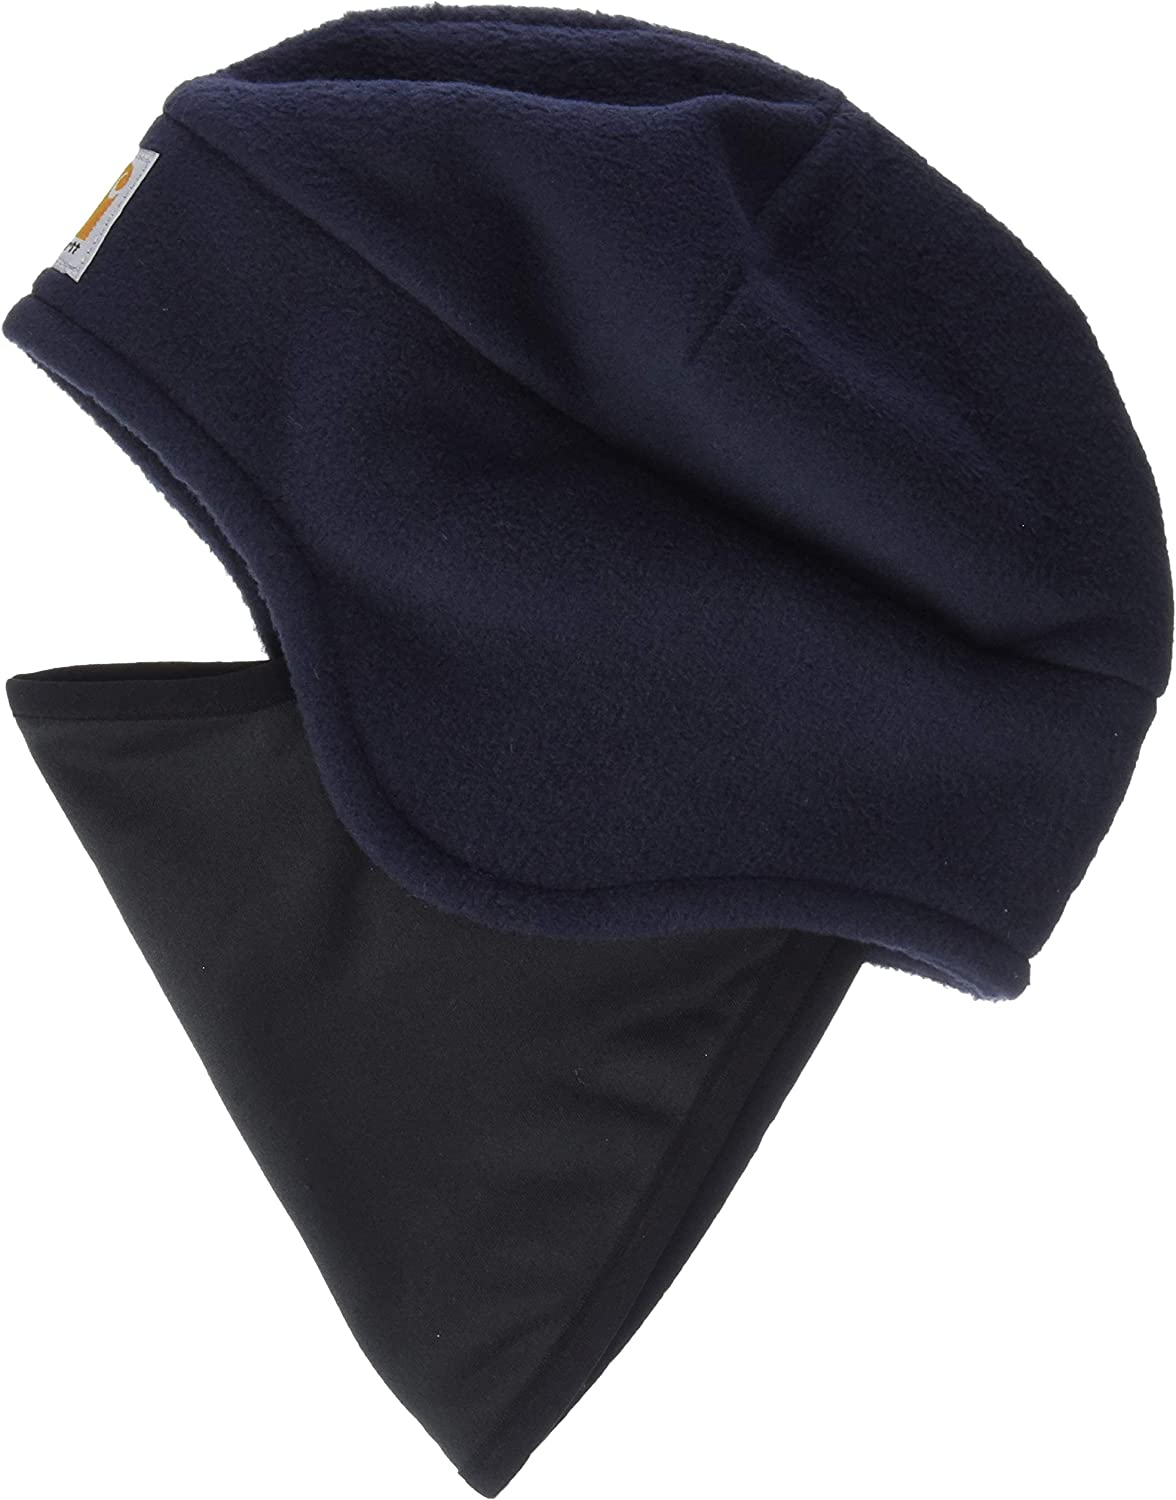 Carhartt Mens Fleece 2 in 1 Headwear